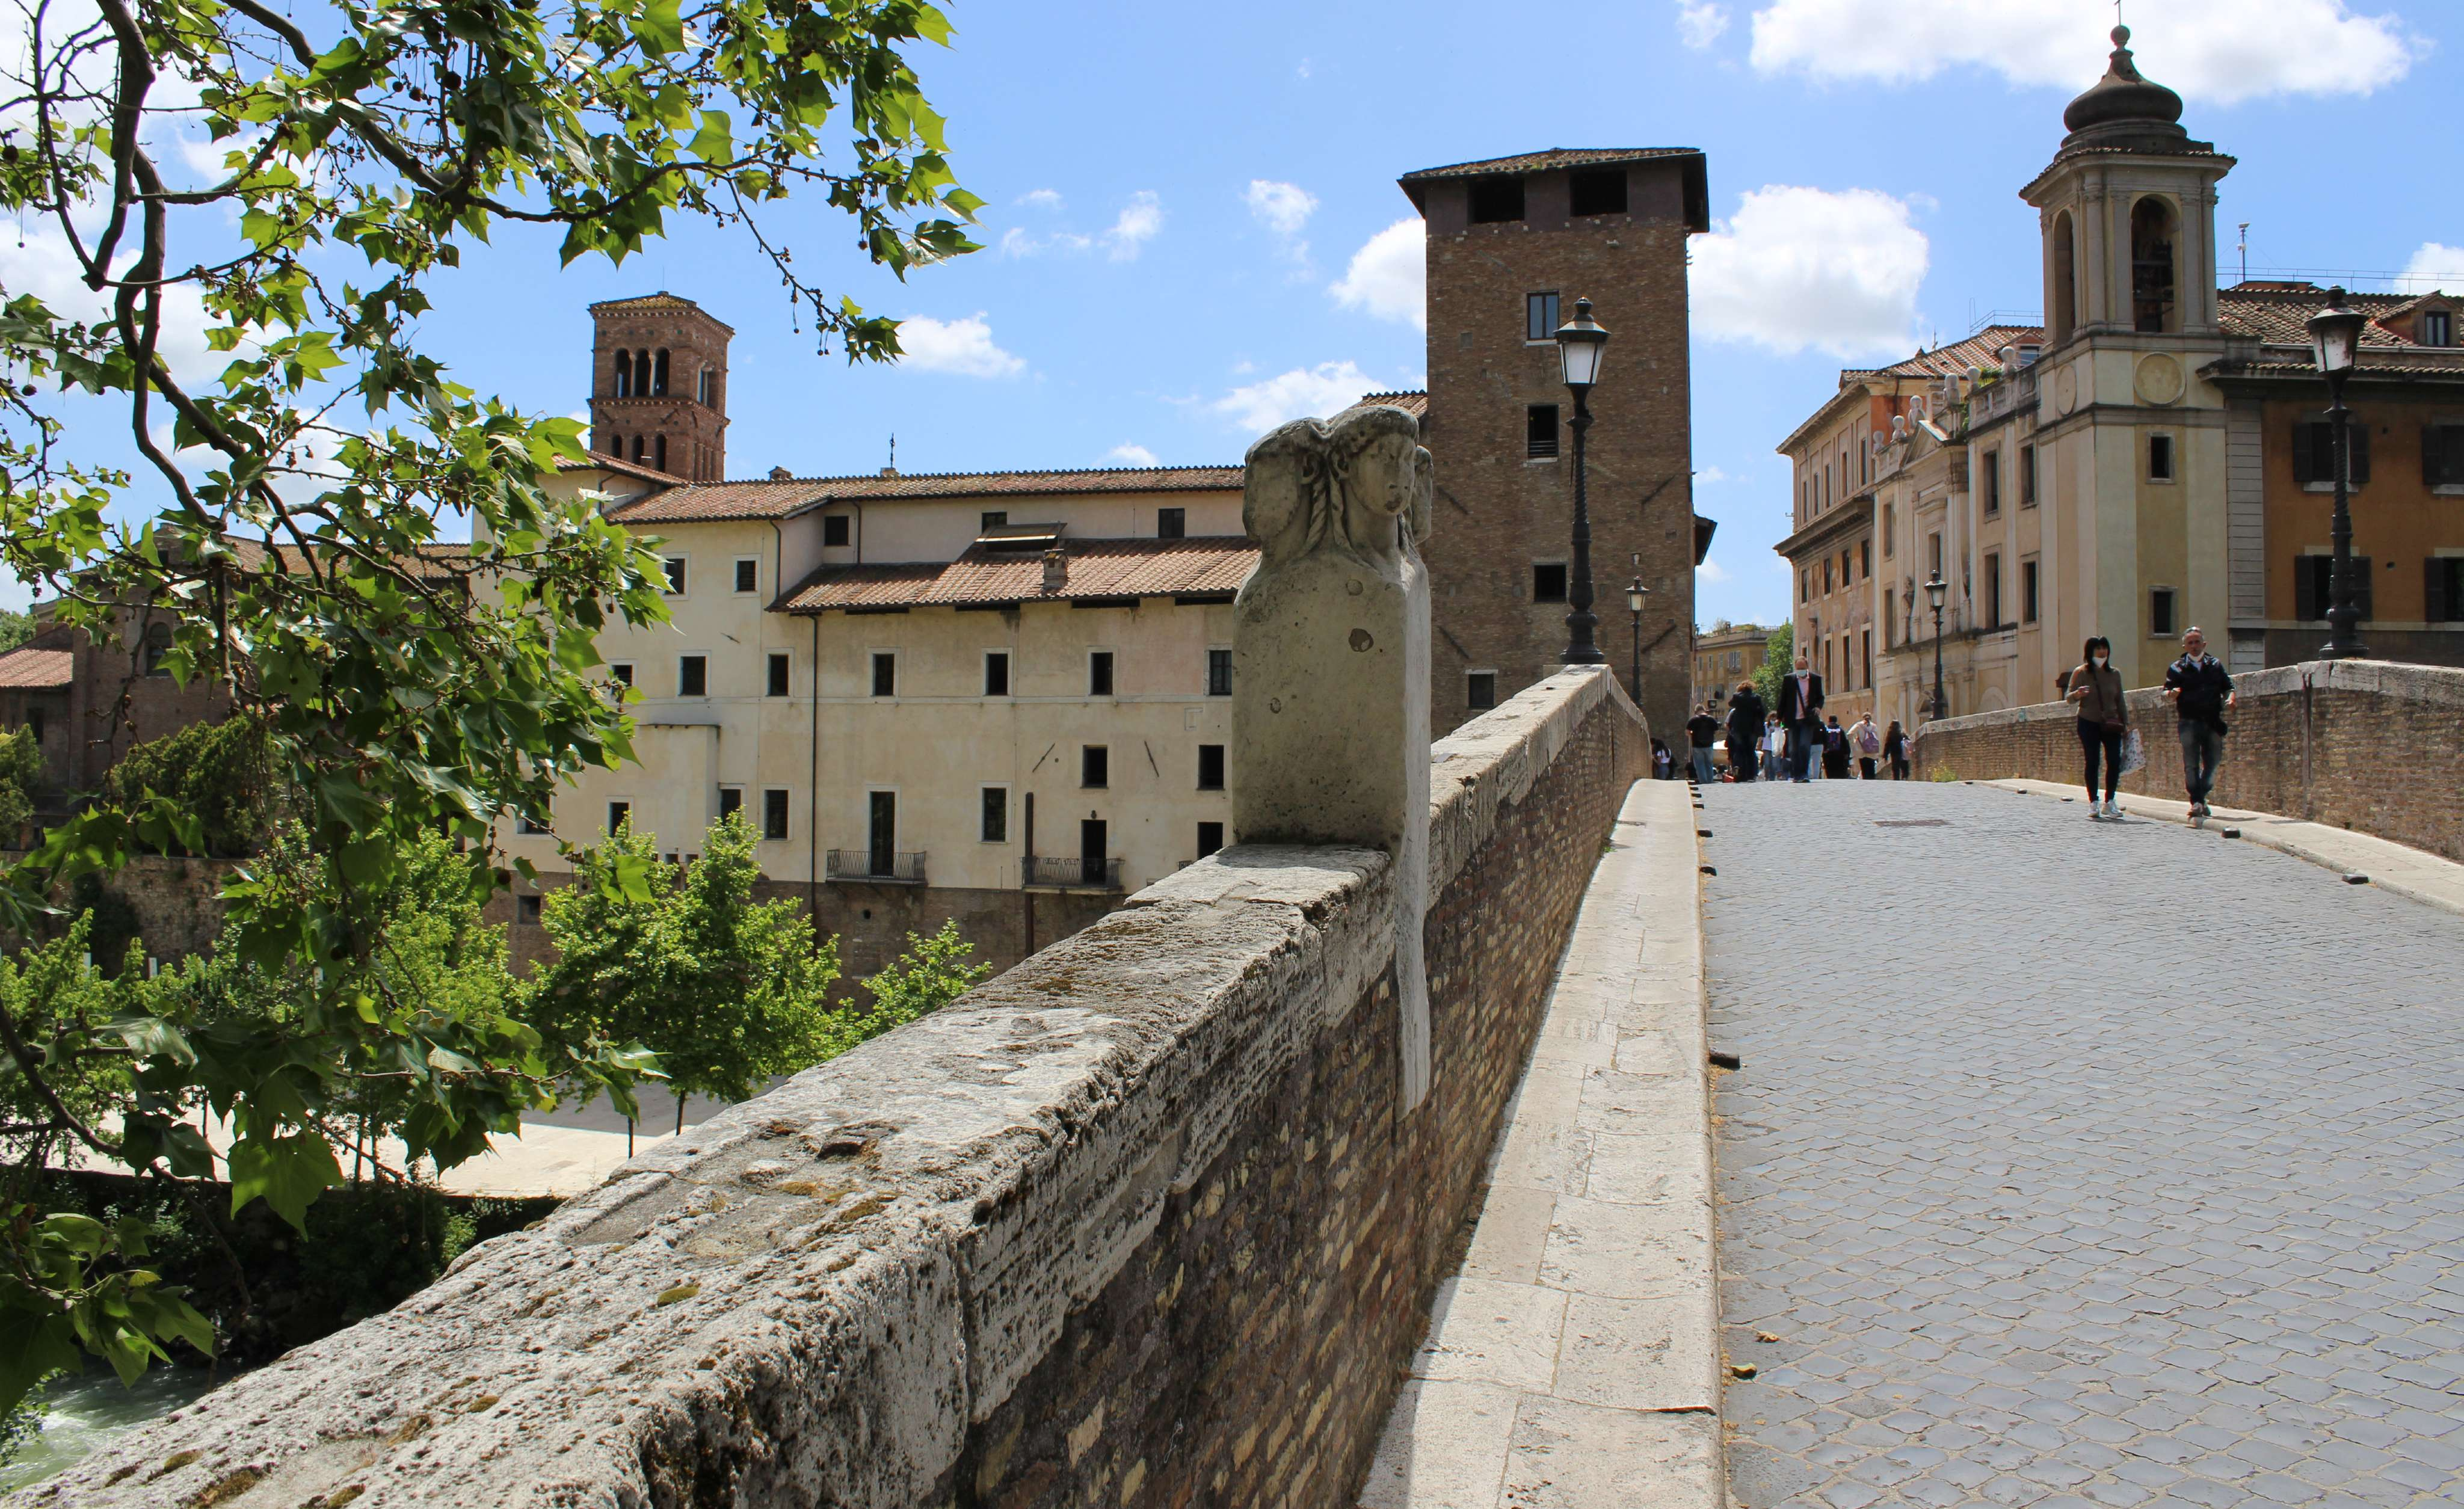 Rome - Trastevere Highlights (QUEST IN TEST MODE) image